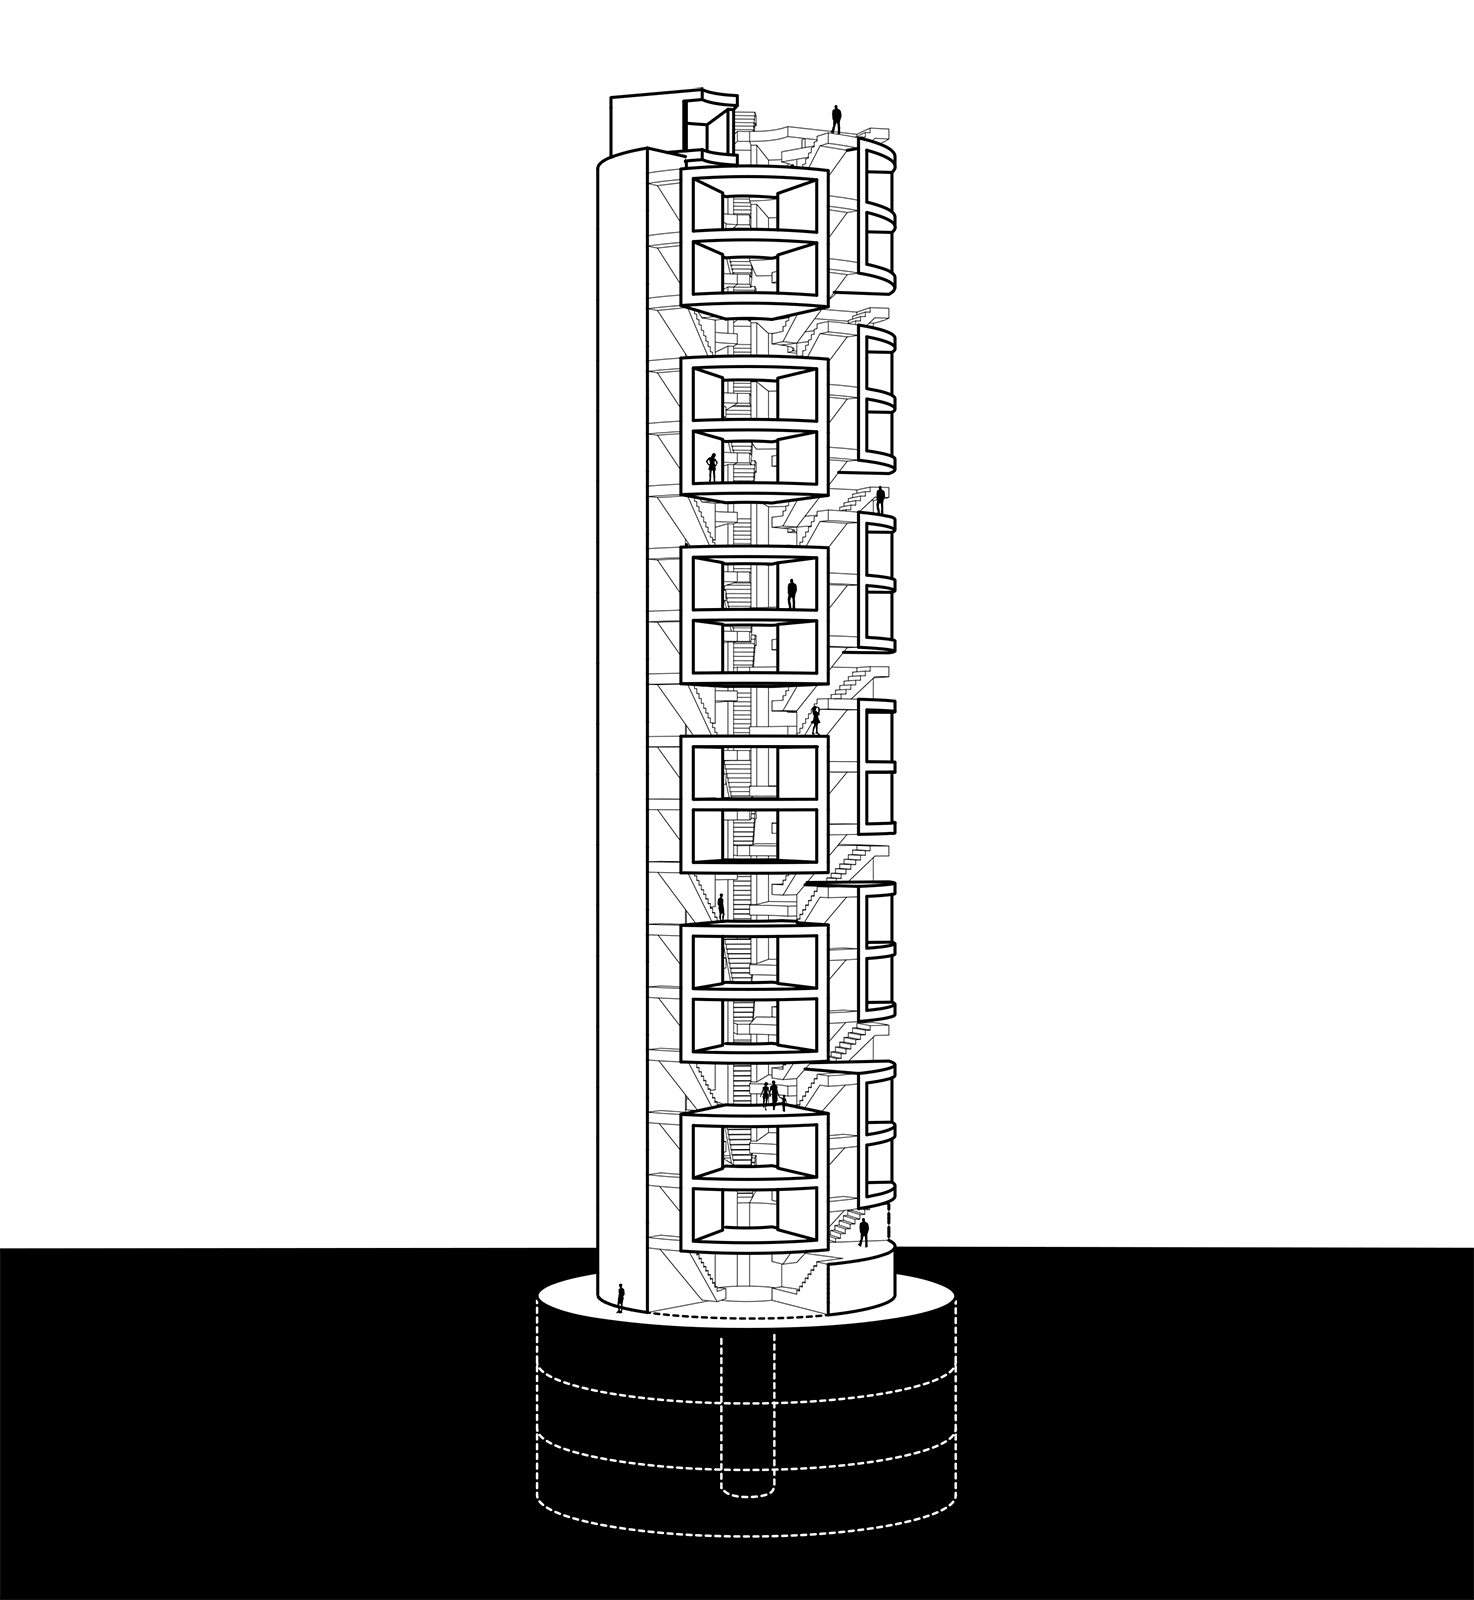 Elevation drawing of the skinny housing cylinder with units and shared spaces weaving throughout the FVDC tower